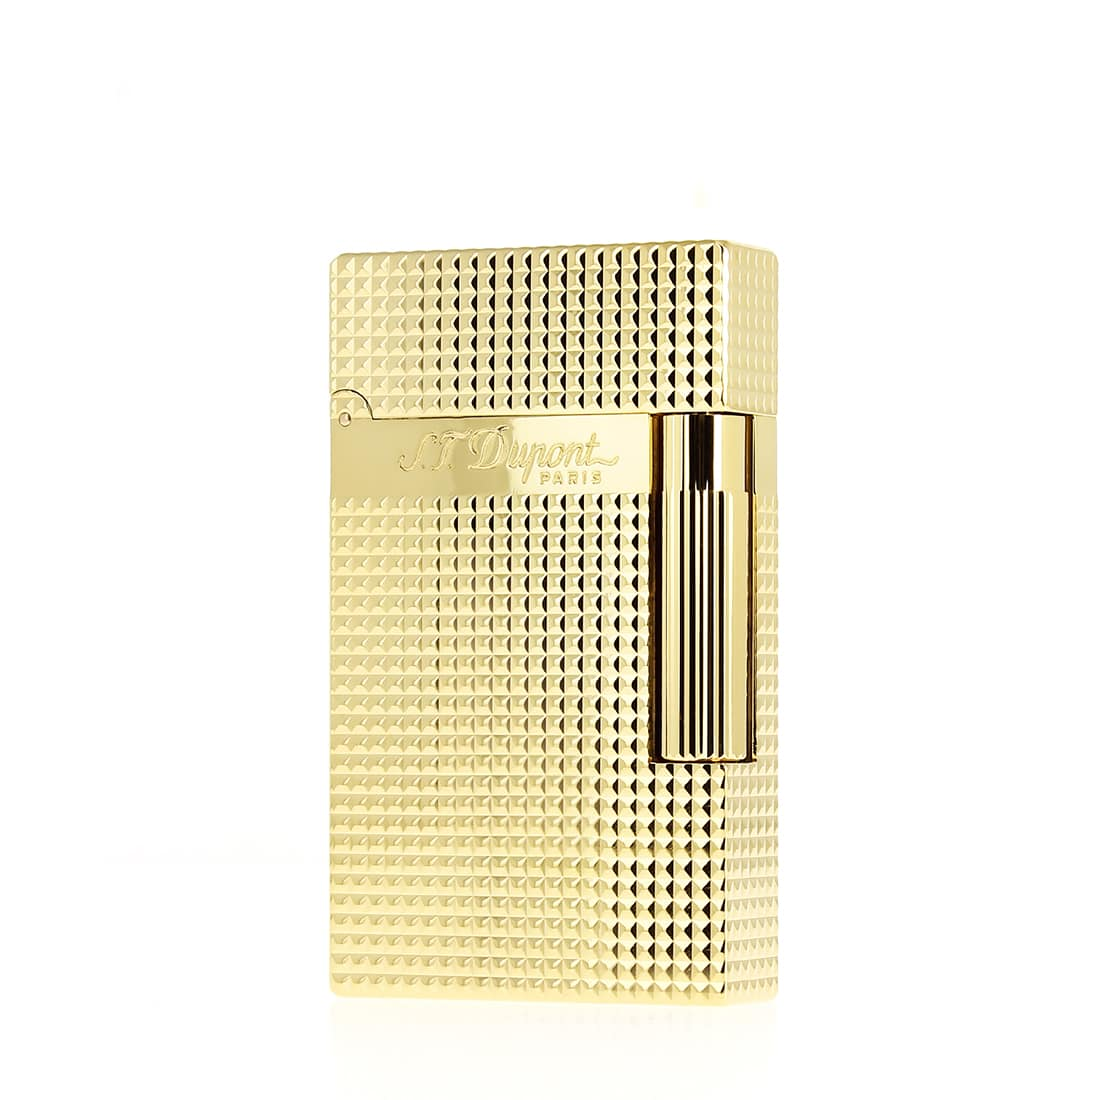 Photo de Briquet S.T. Dupont Ligne 2 pointe de diamant finition or